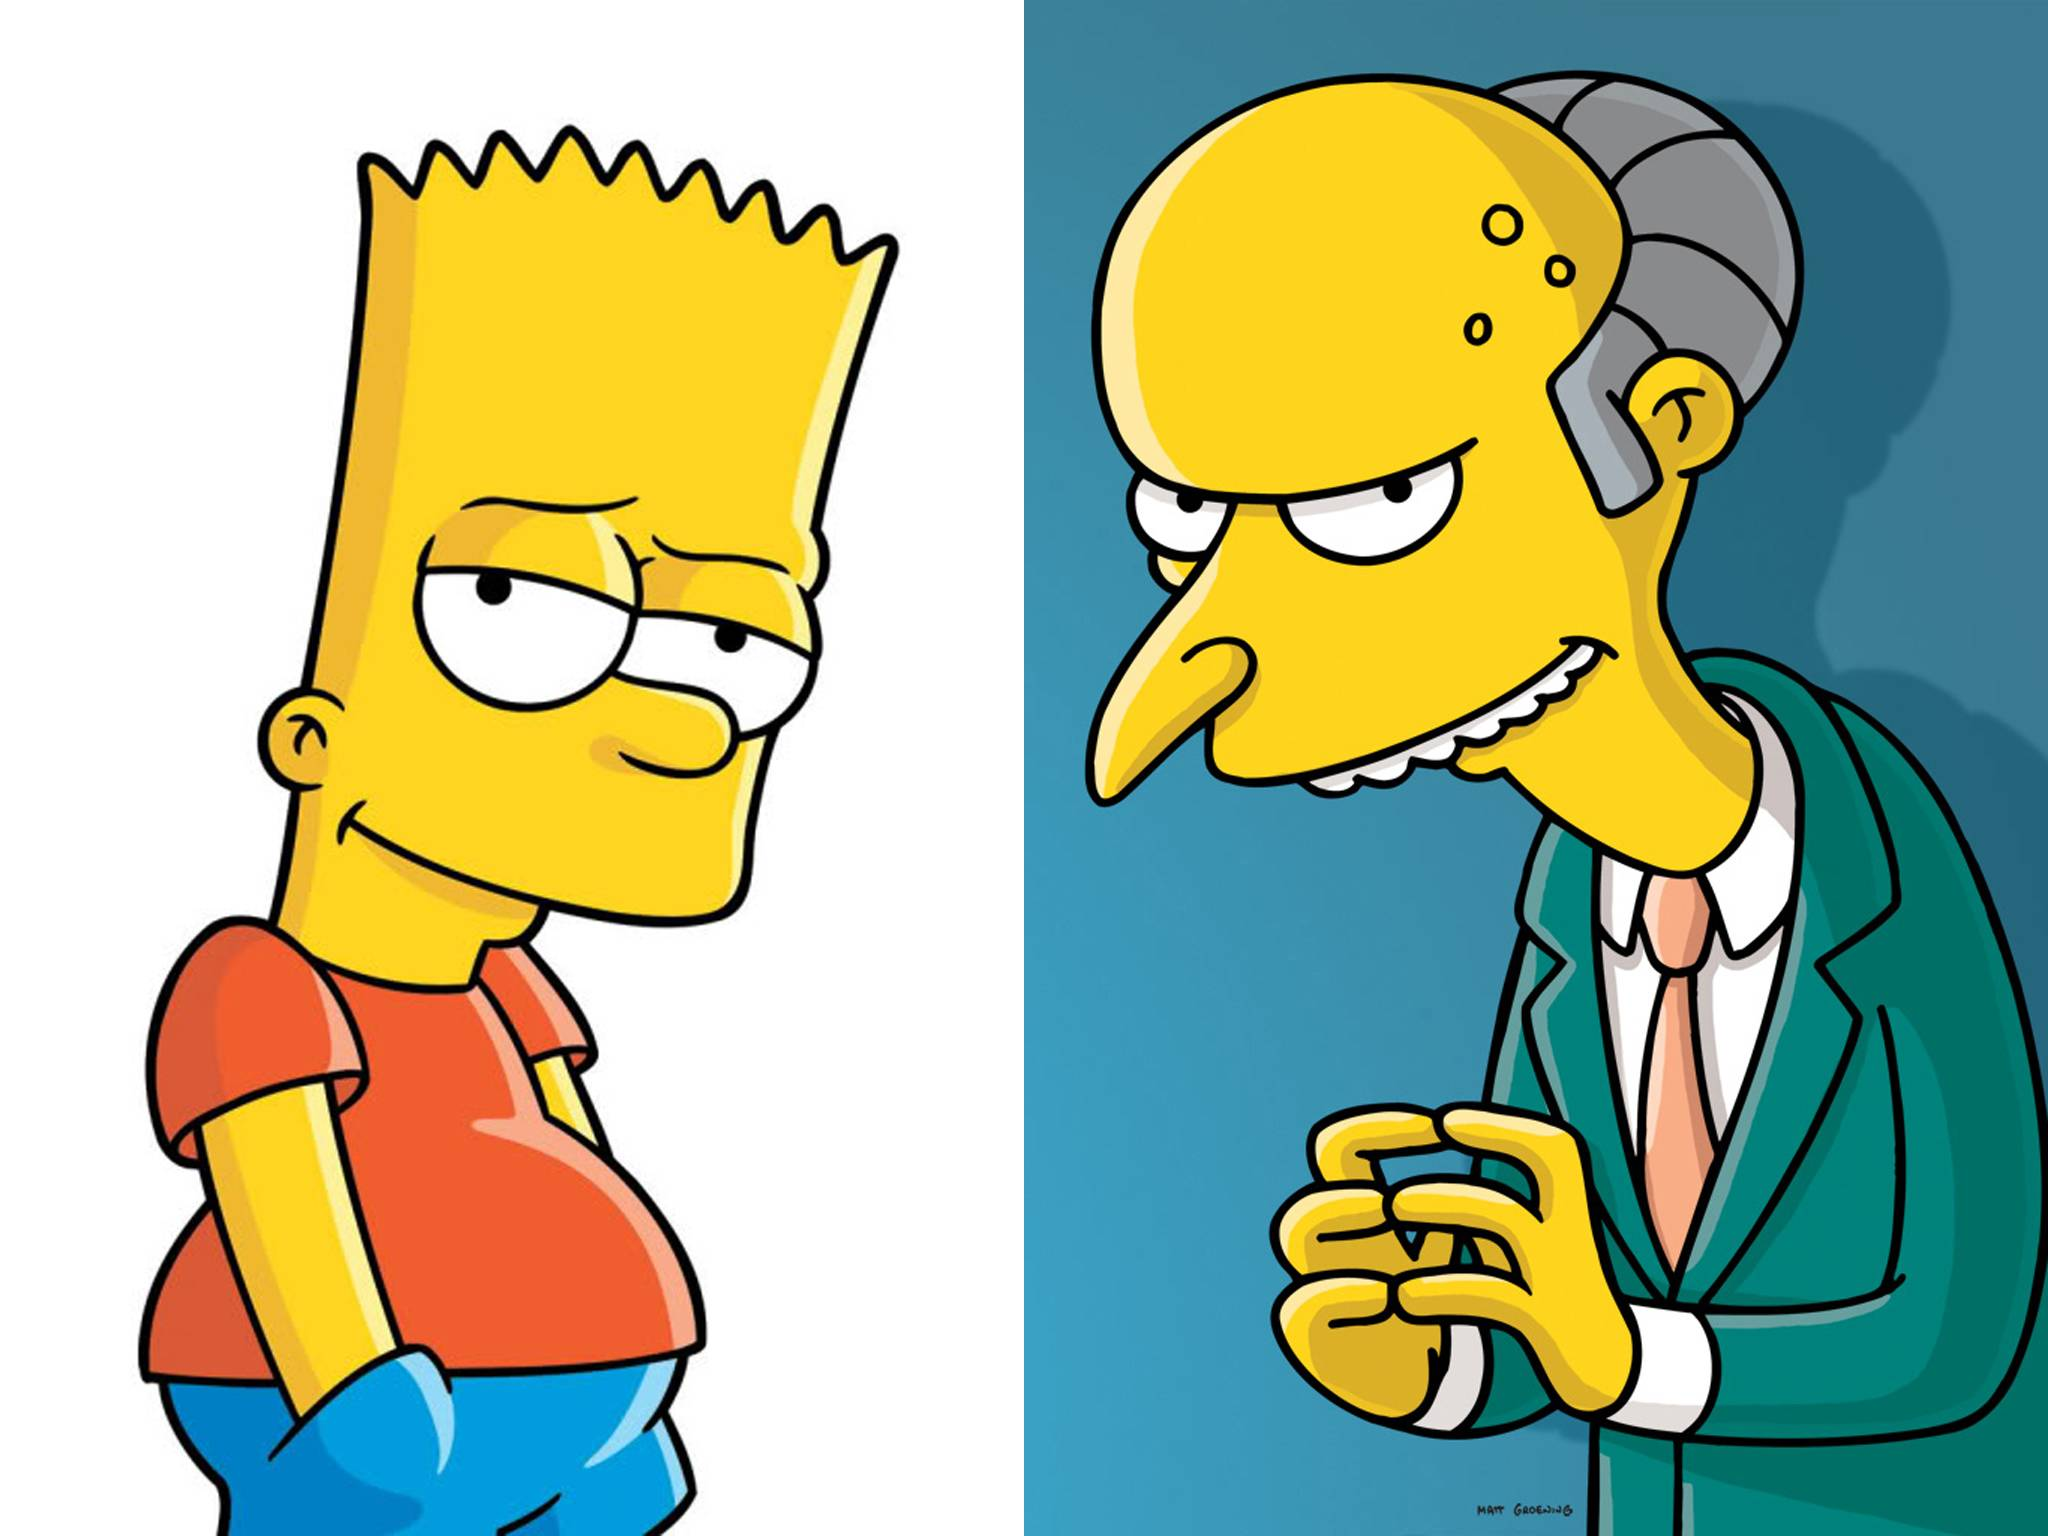 The Simpsons Bart vs. Mr. Burns · ""